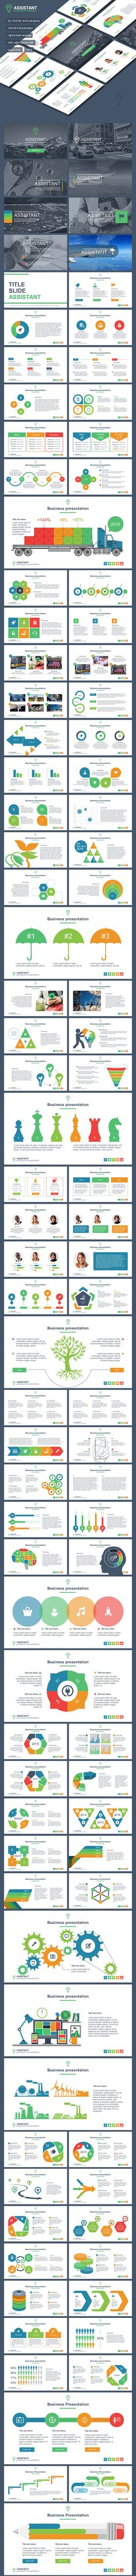 Simplicity Powerpoint Template  Powerpoint Templates